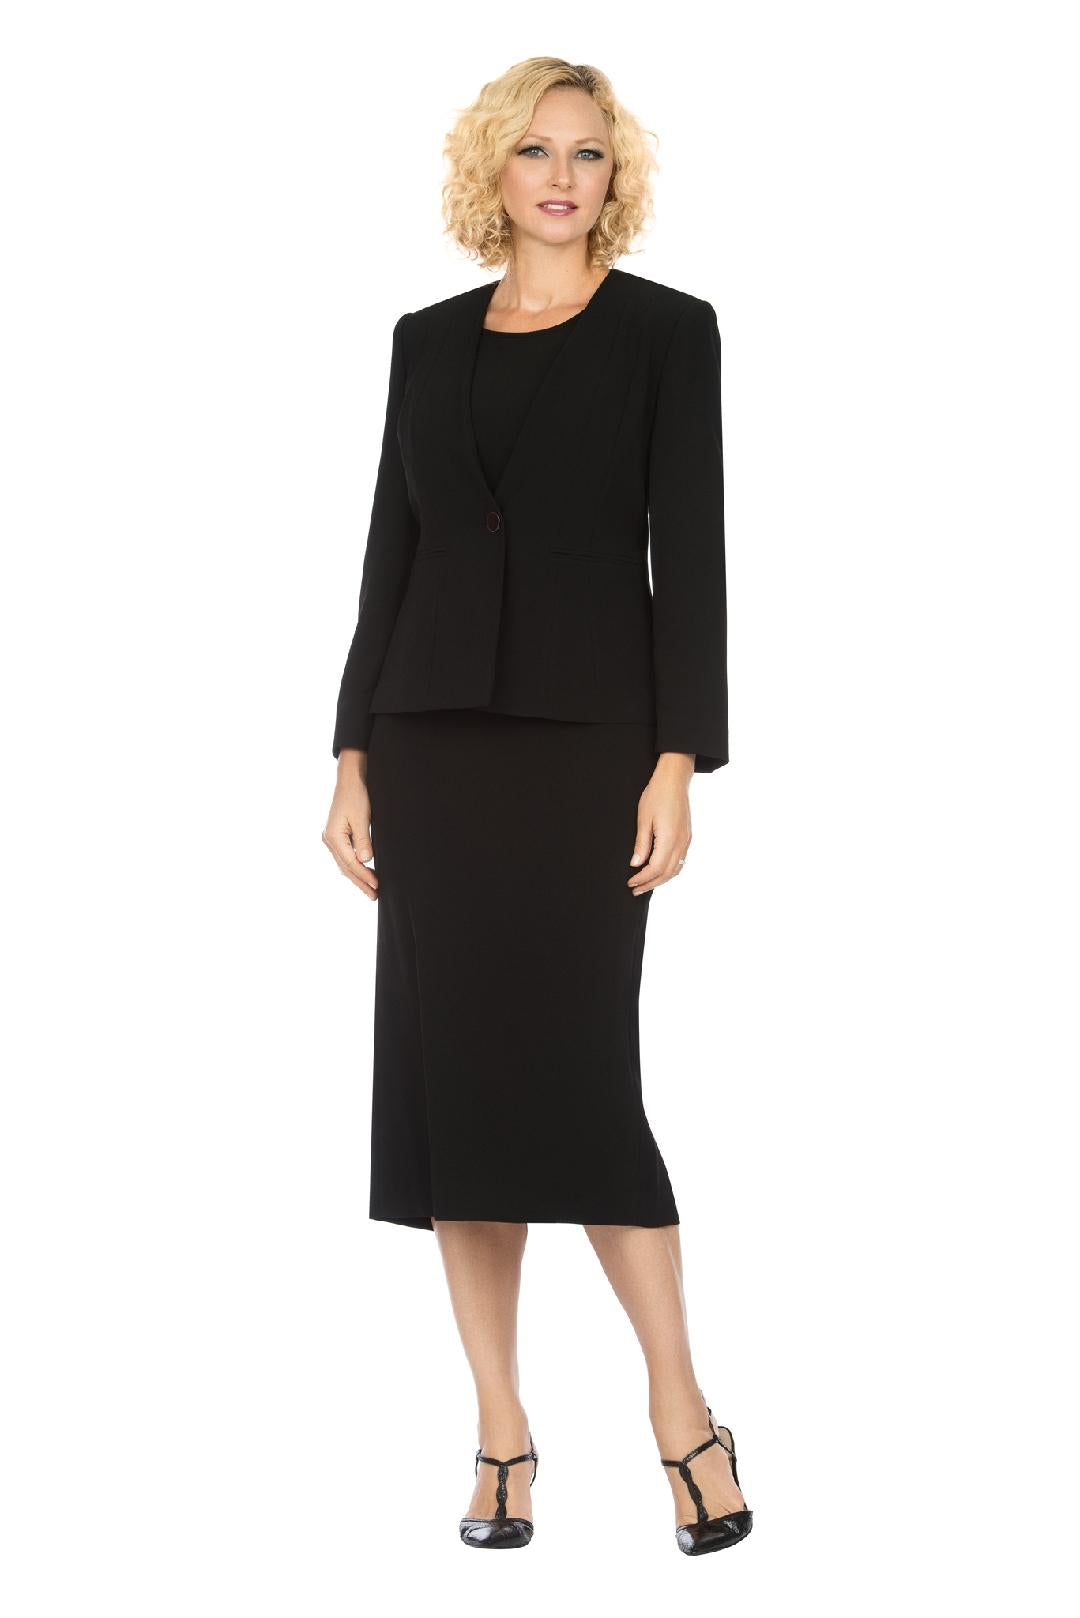 Giovanna Usher Suit S0722-Black - Church Suits For Less